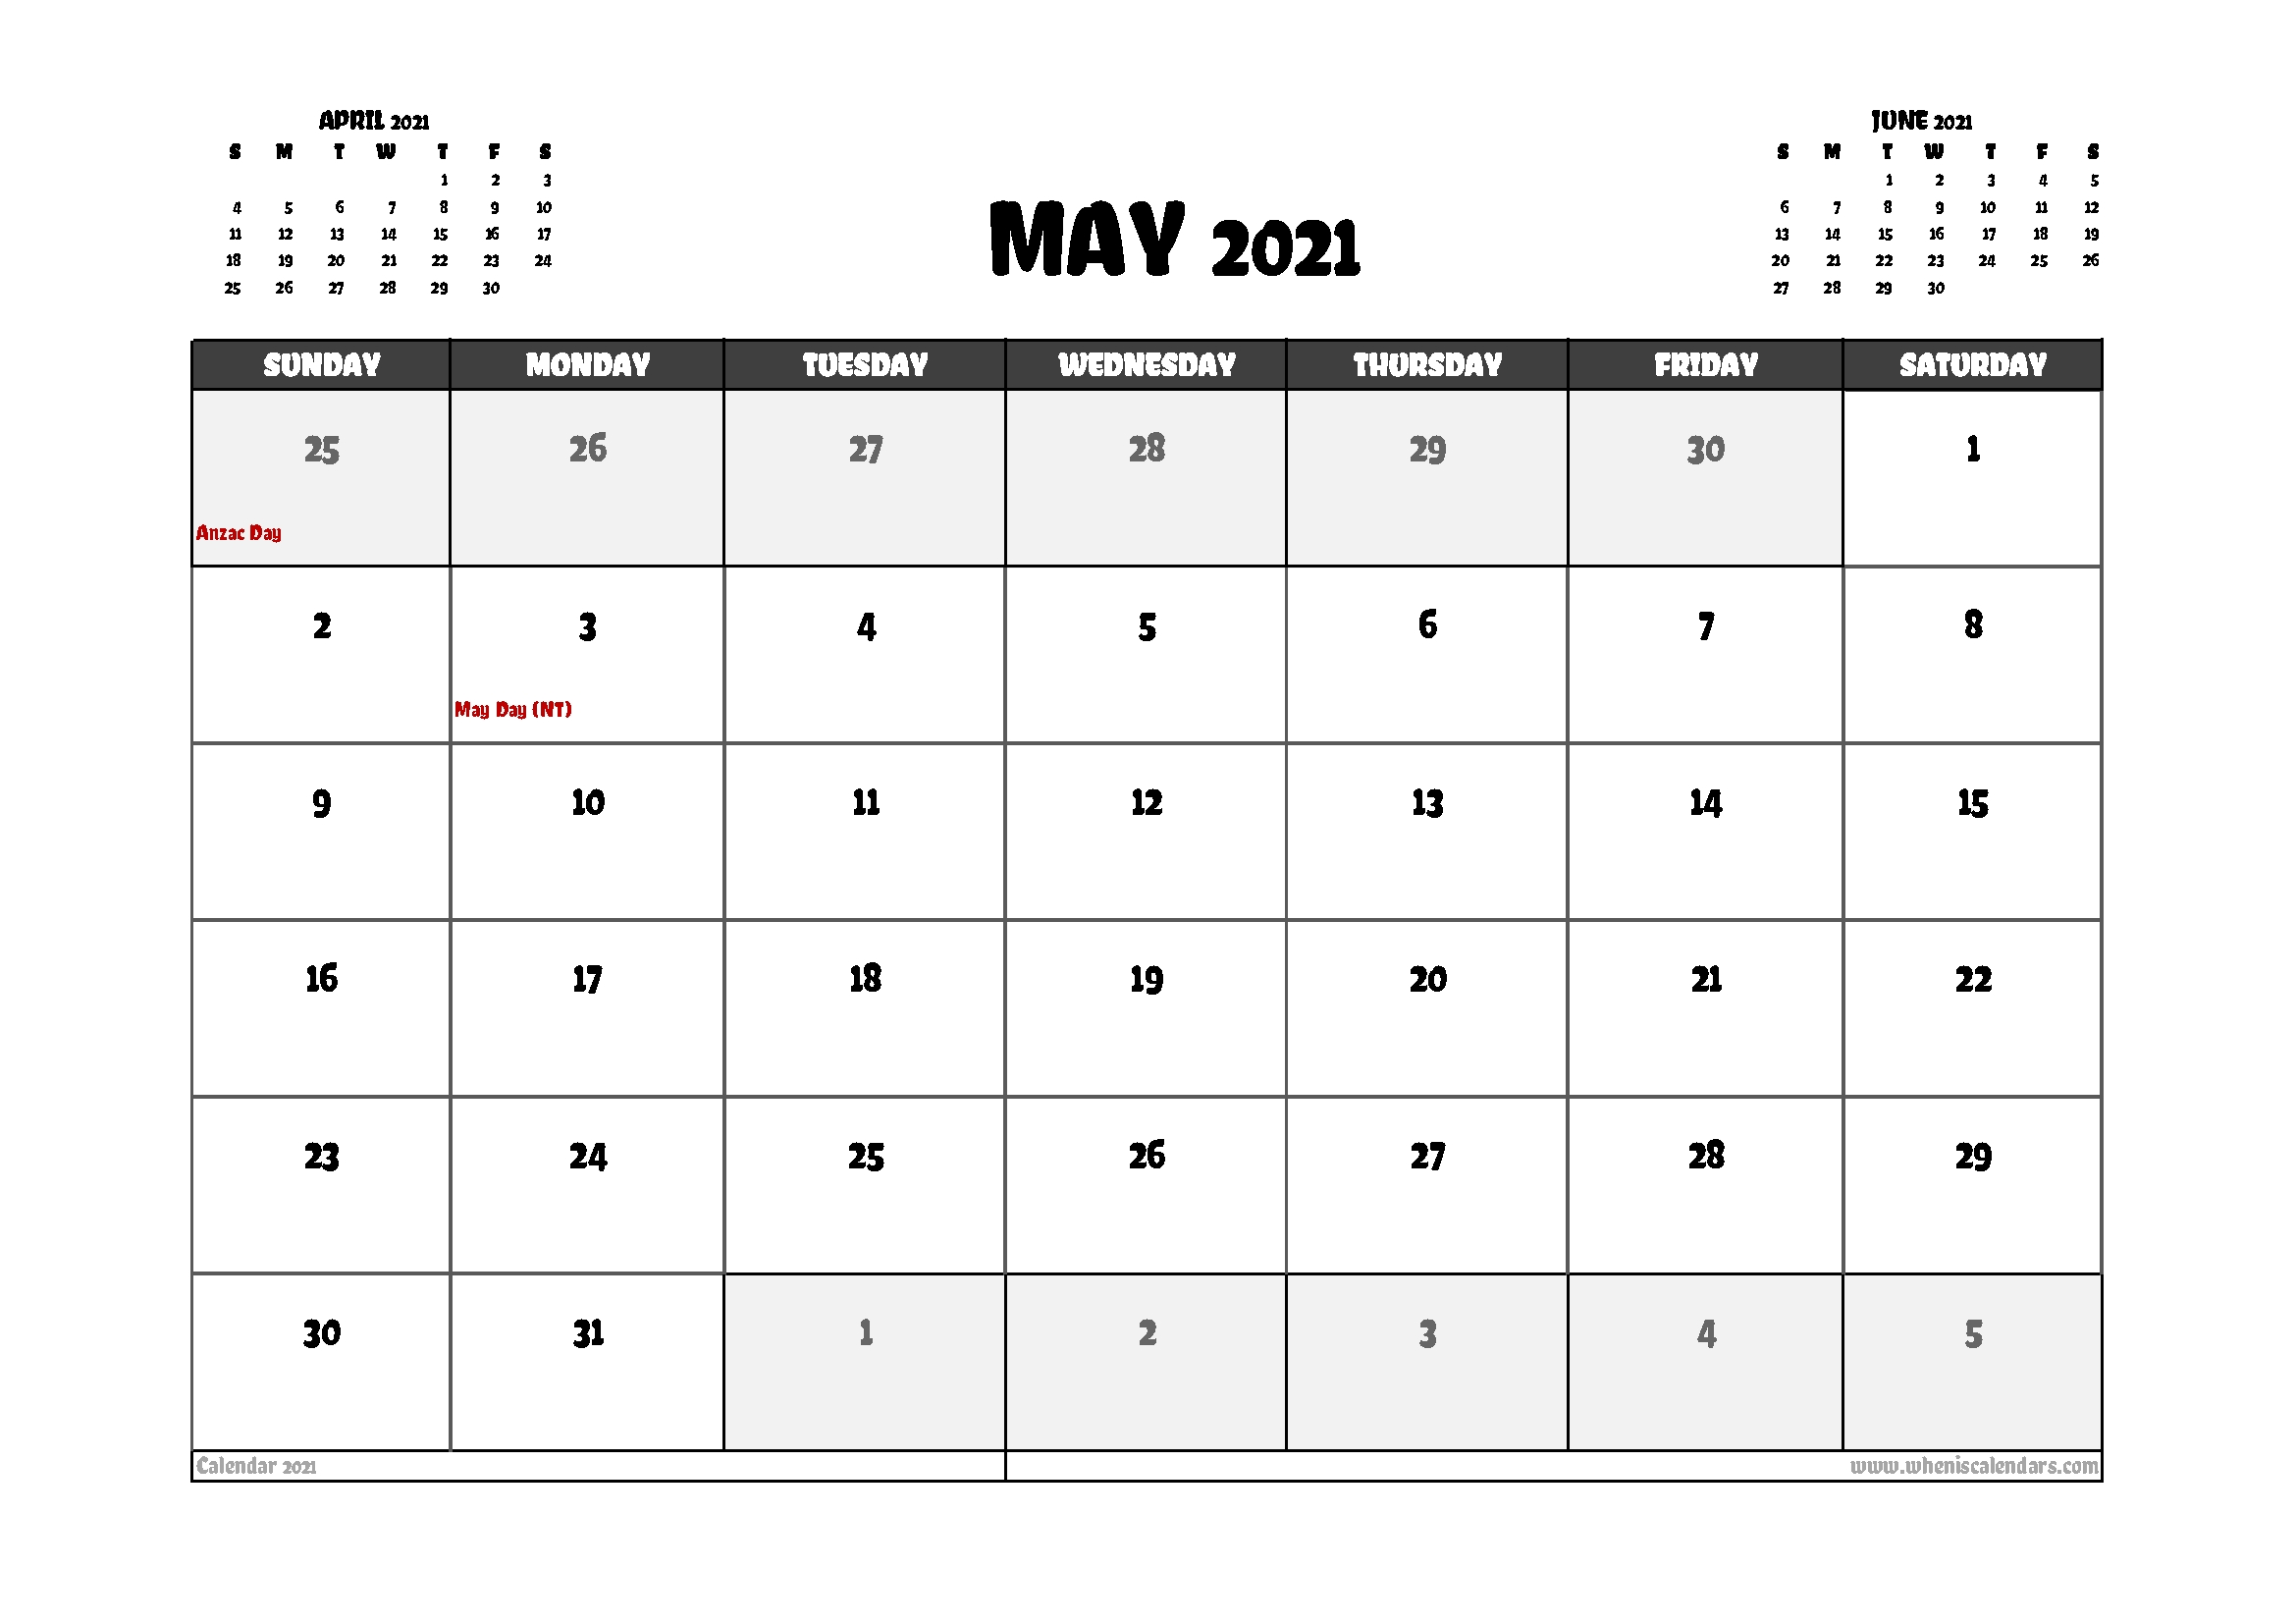 20+ 2021 Australia Public Holidays - Free Download Printable Calendar Templates ️ October 2021 Calendar With Holidays Philippines